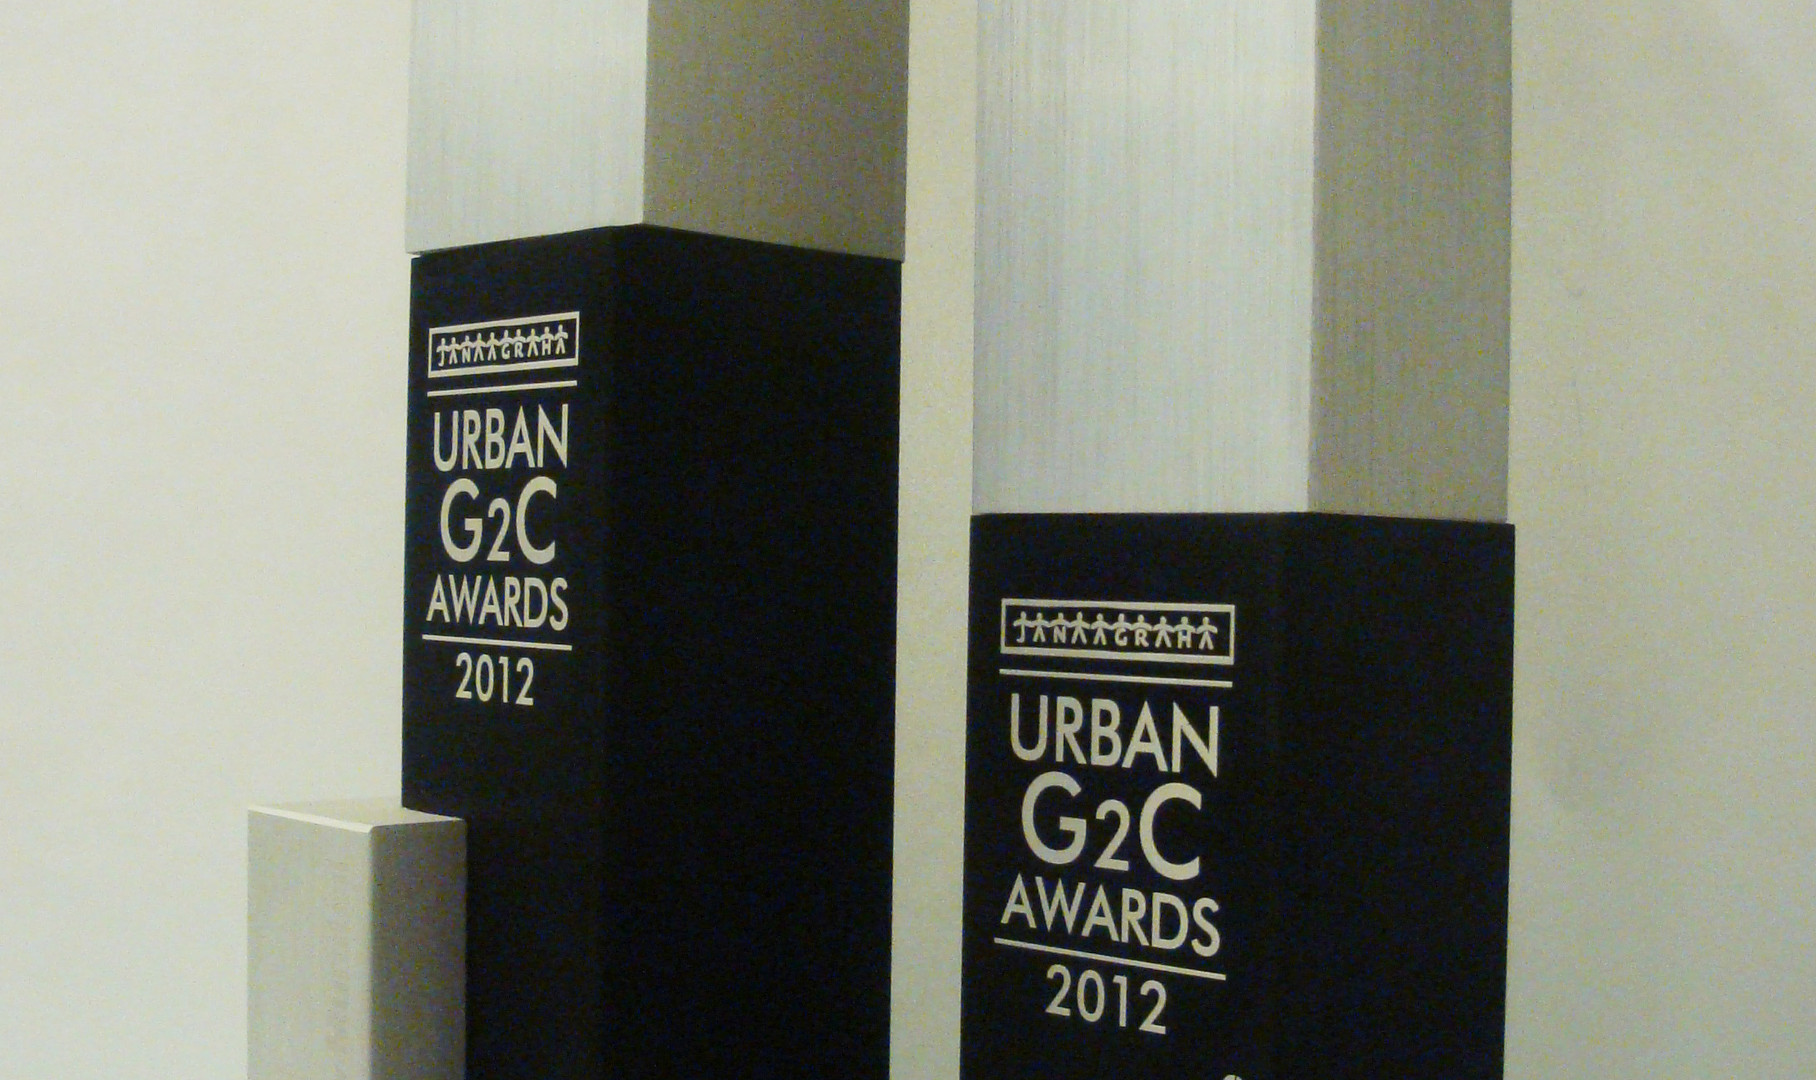 Urban G2C Awards